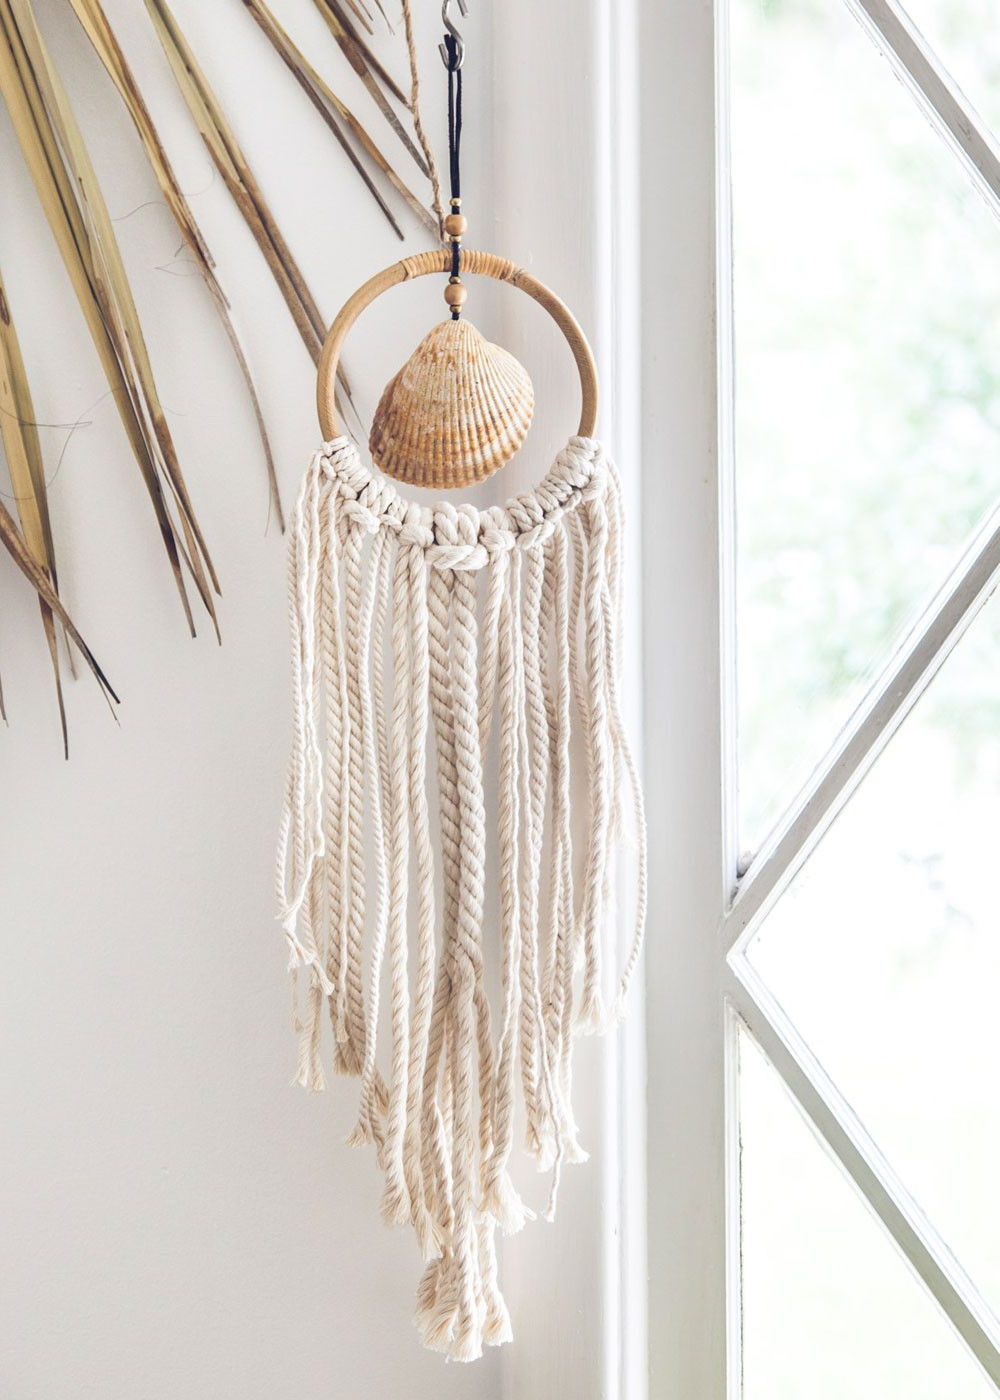 Bohemian Home Decor In Favorite Coastal Flag Sign With Rope Wall Décor (View 6 of 20)